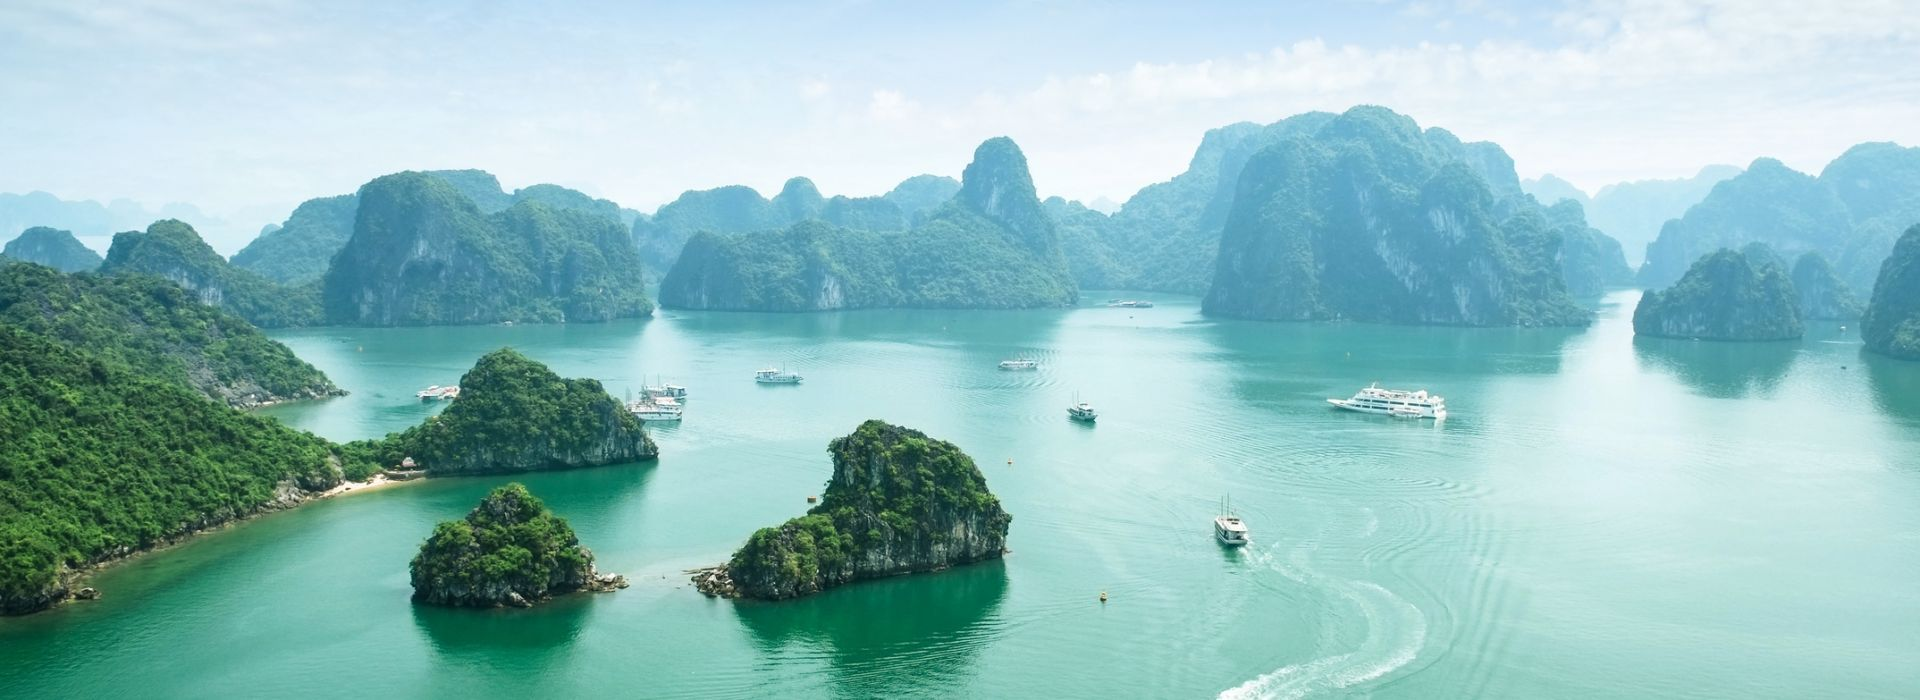 Boat tours, water sports and marine wildlife in Da Nang